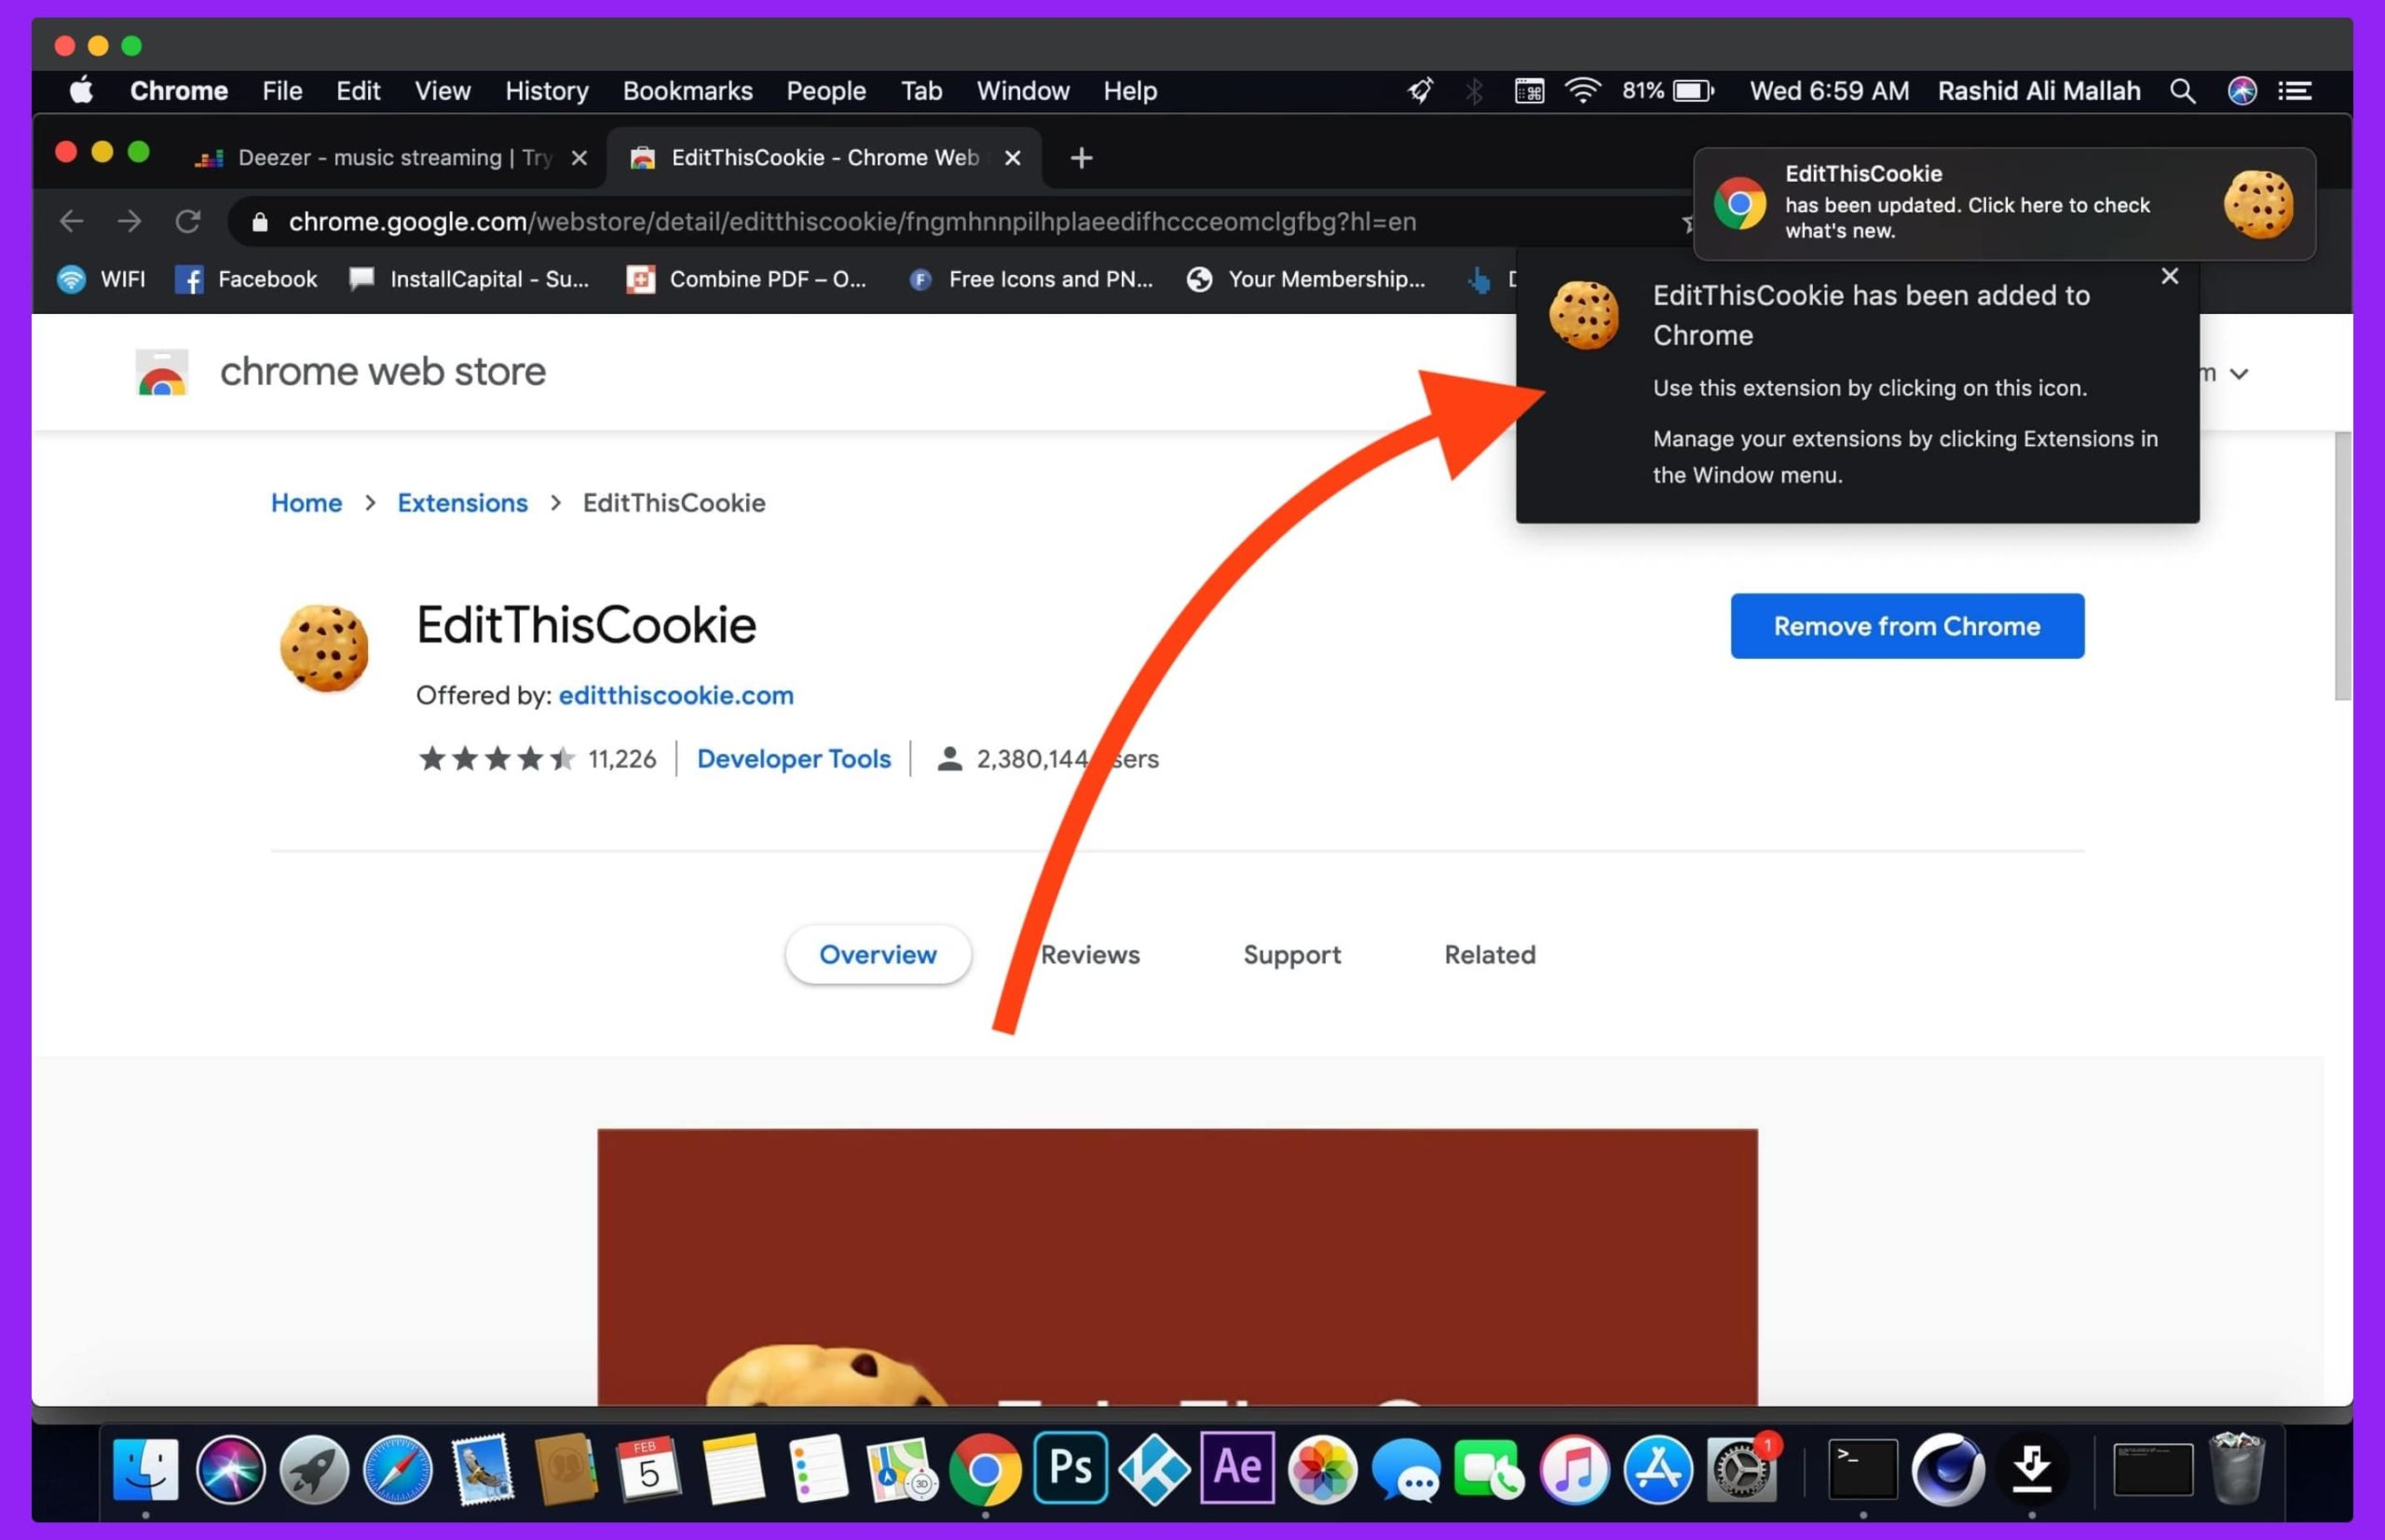 EditThisCookie-has-been-added-to-Chrome